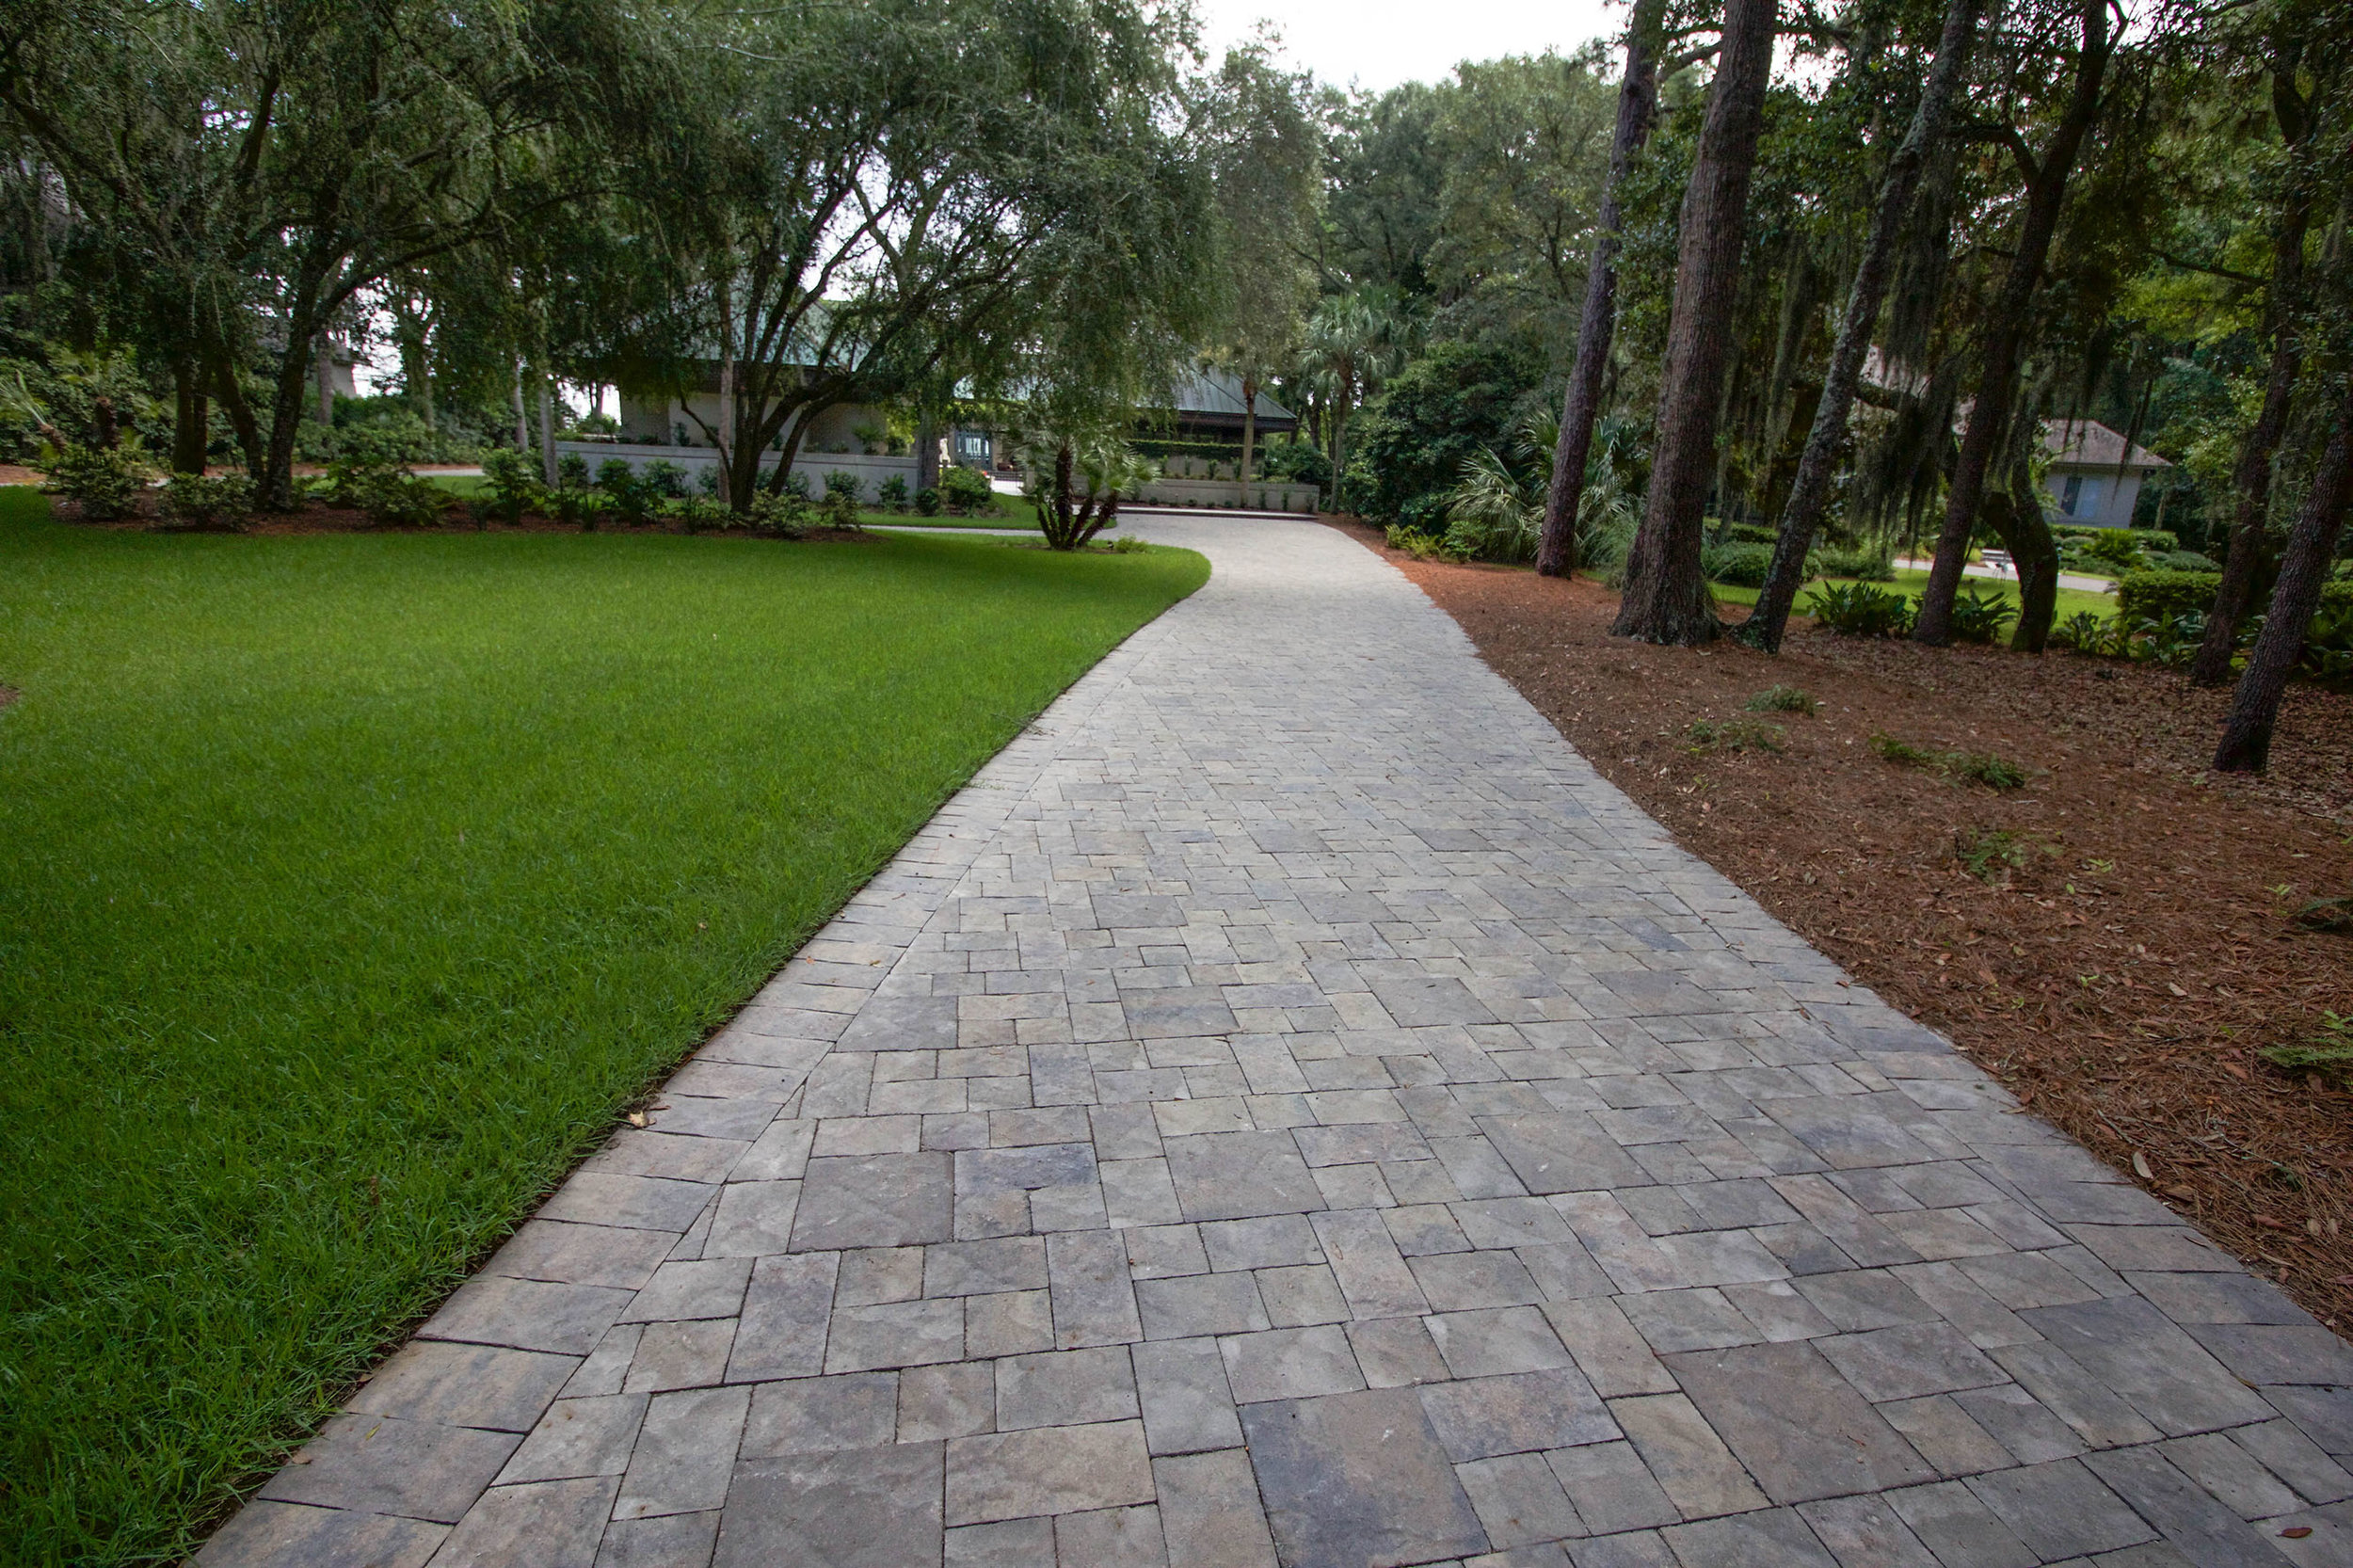 Picking the Best Textured Paver   For Your Home Can Depend On Numerous Factors - The Main Goal Should Be To Have Your Selected Brick Paver, Compliment Your Home and Existing Hardscape Projects.